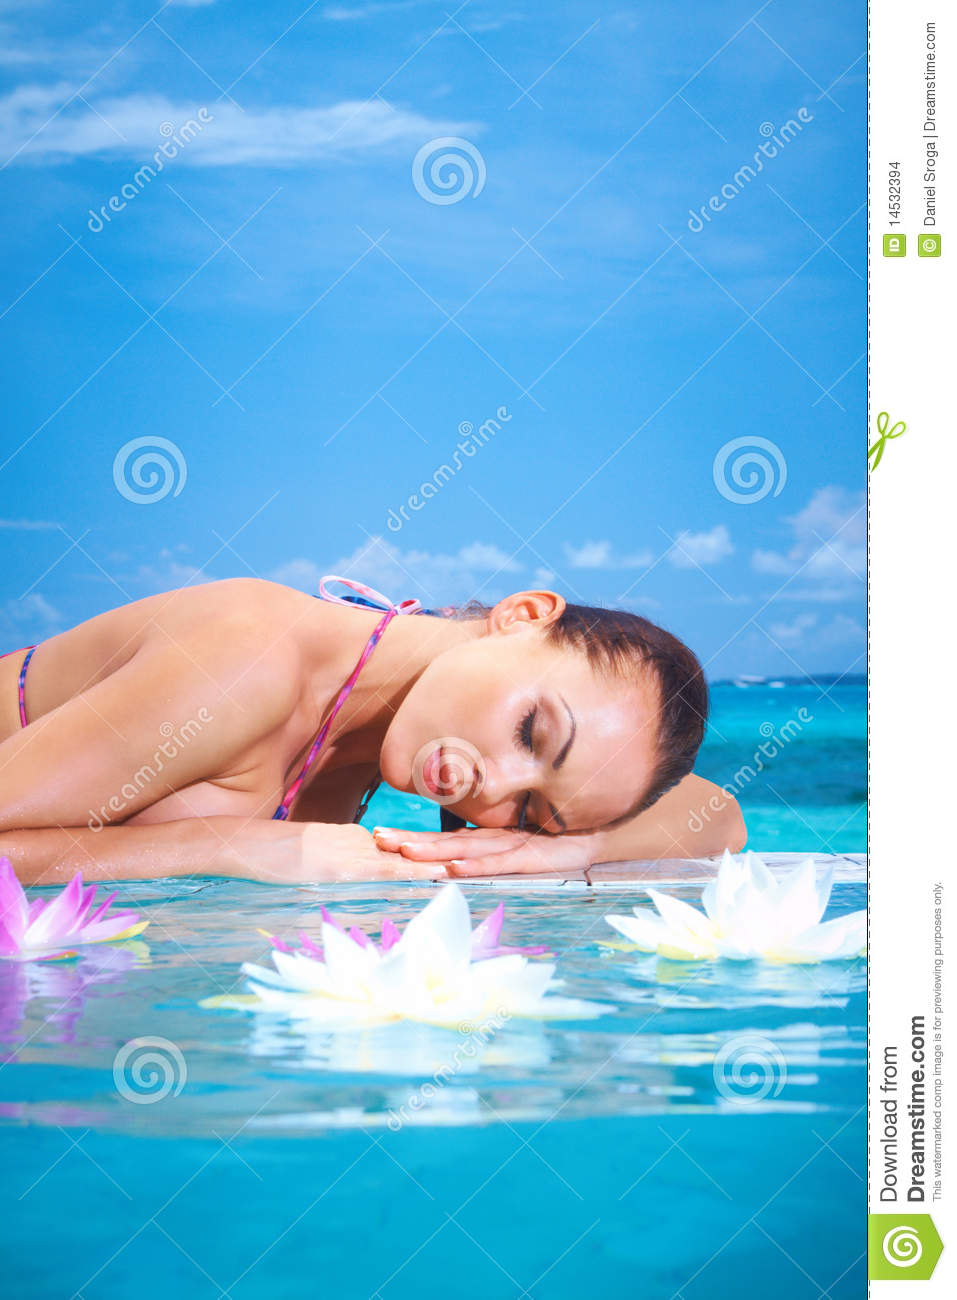 Woman At Maldives Stock Images - Image: 14532394